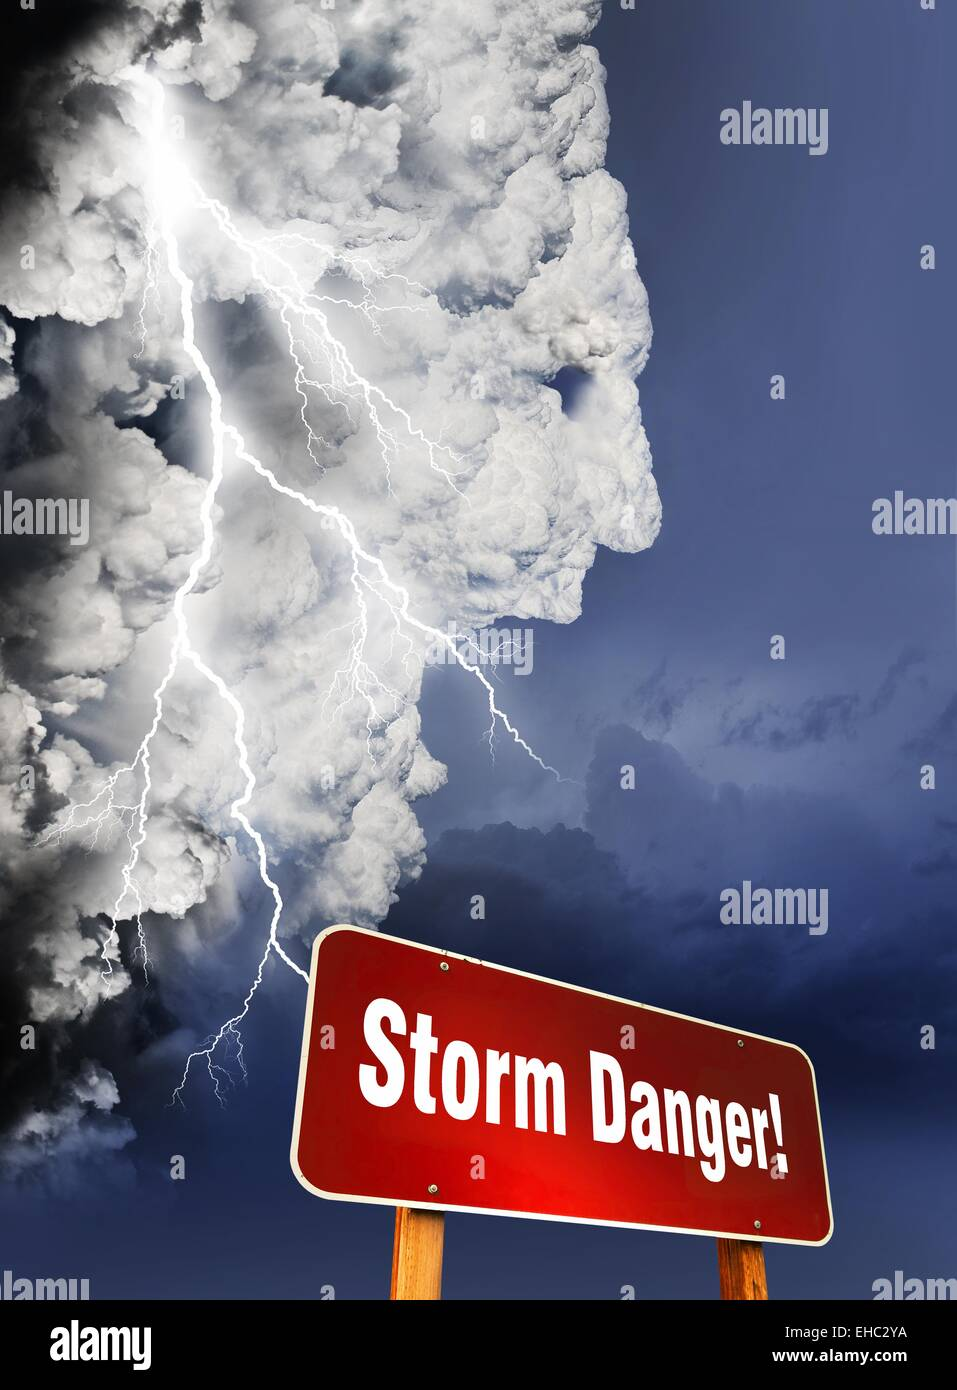 Storm Is Coming illustration with giant storm cloud in form of a human head - Stock Image